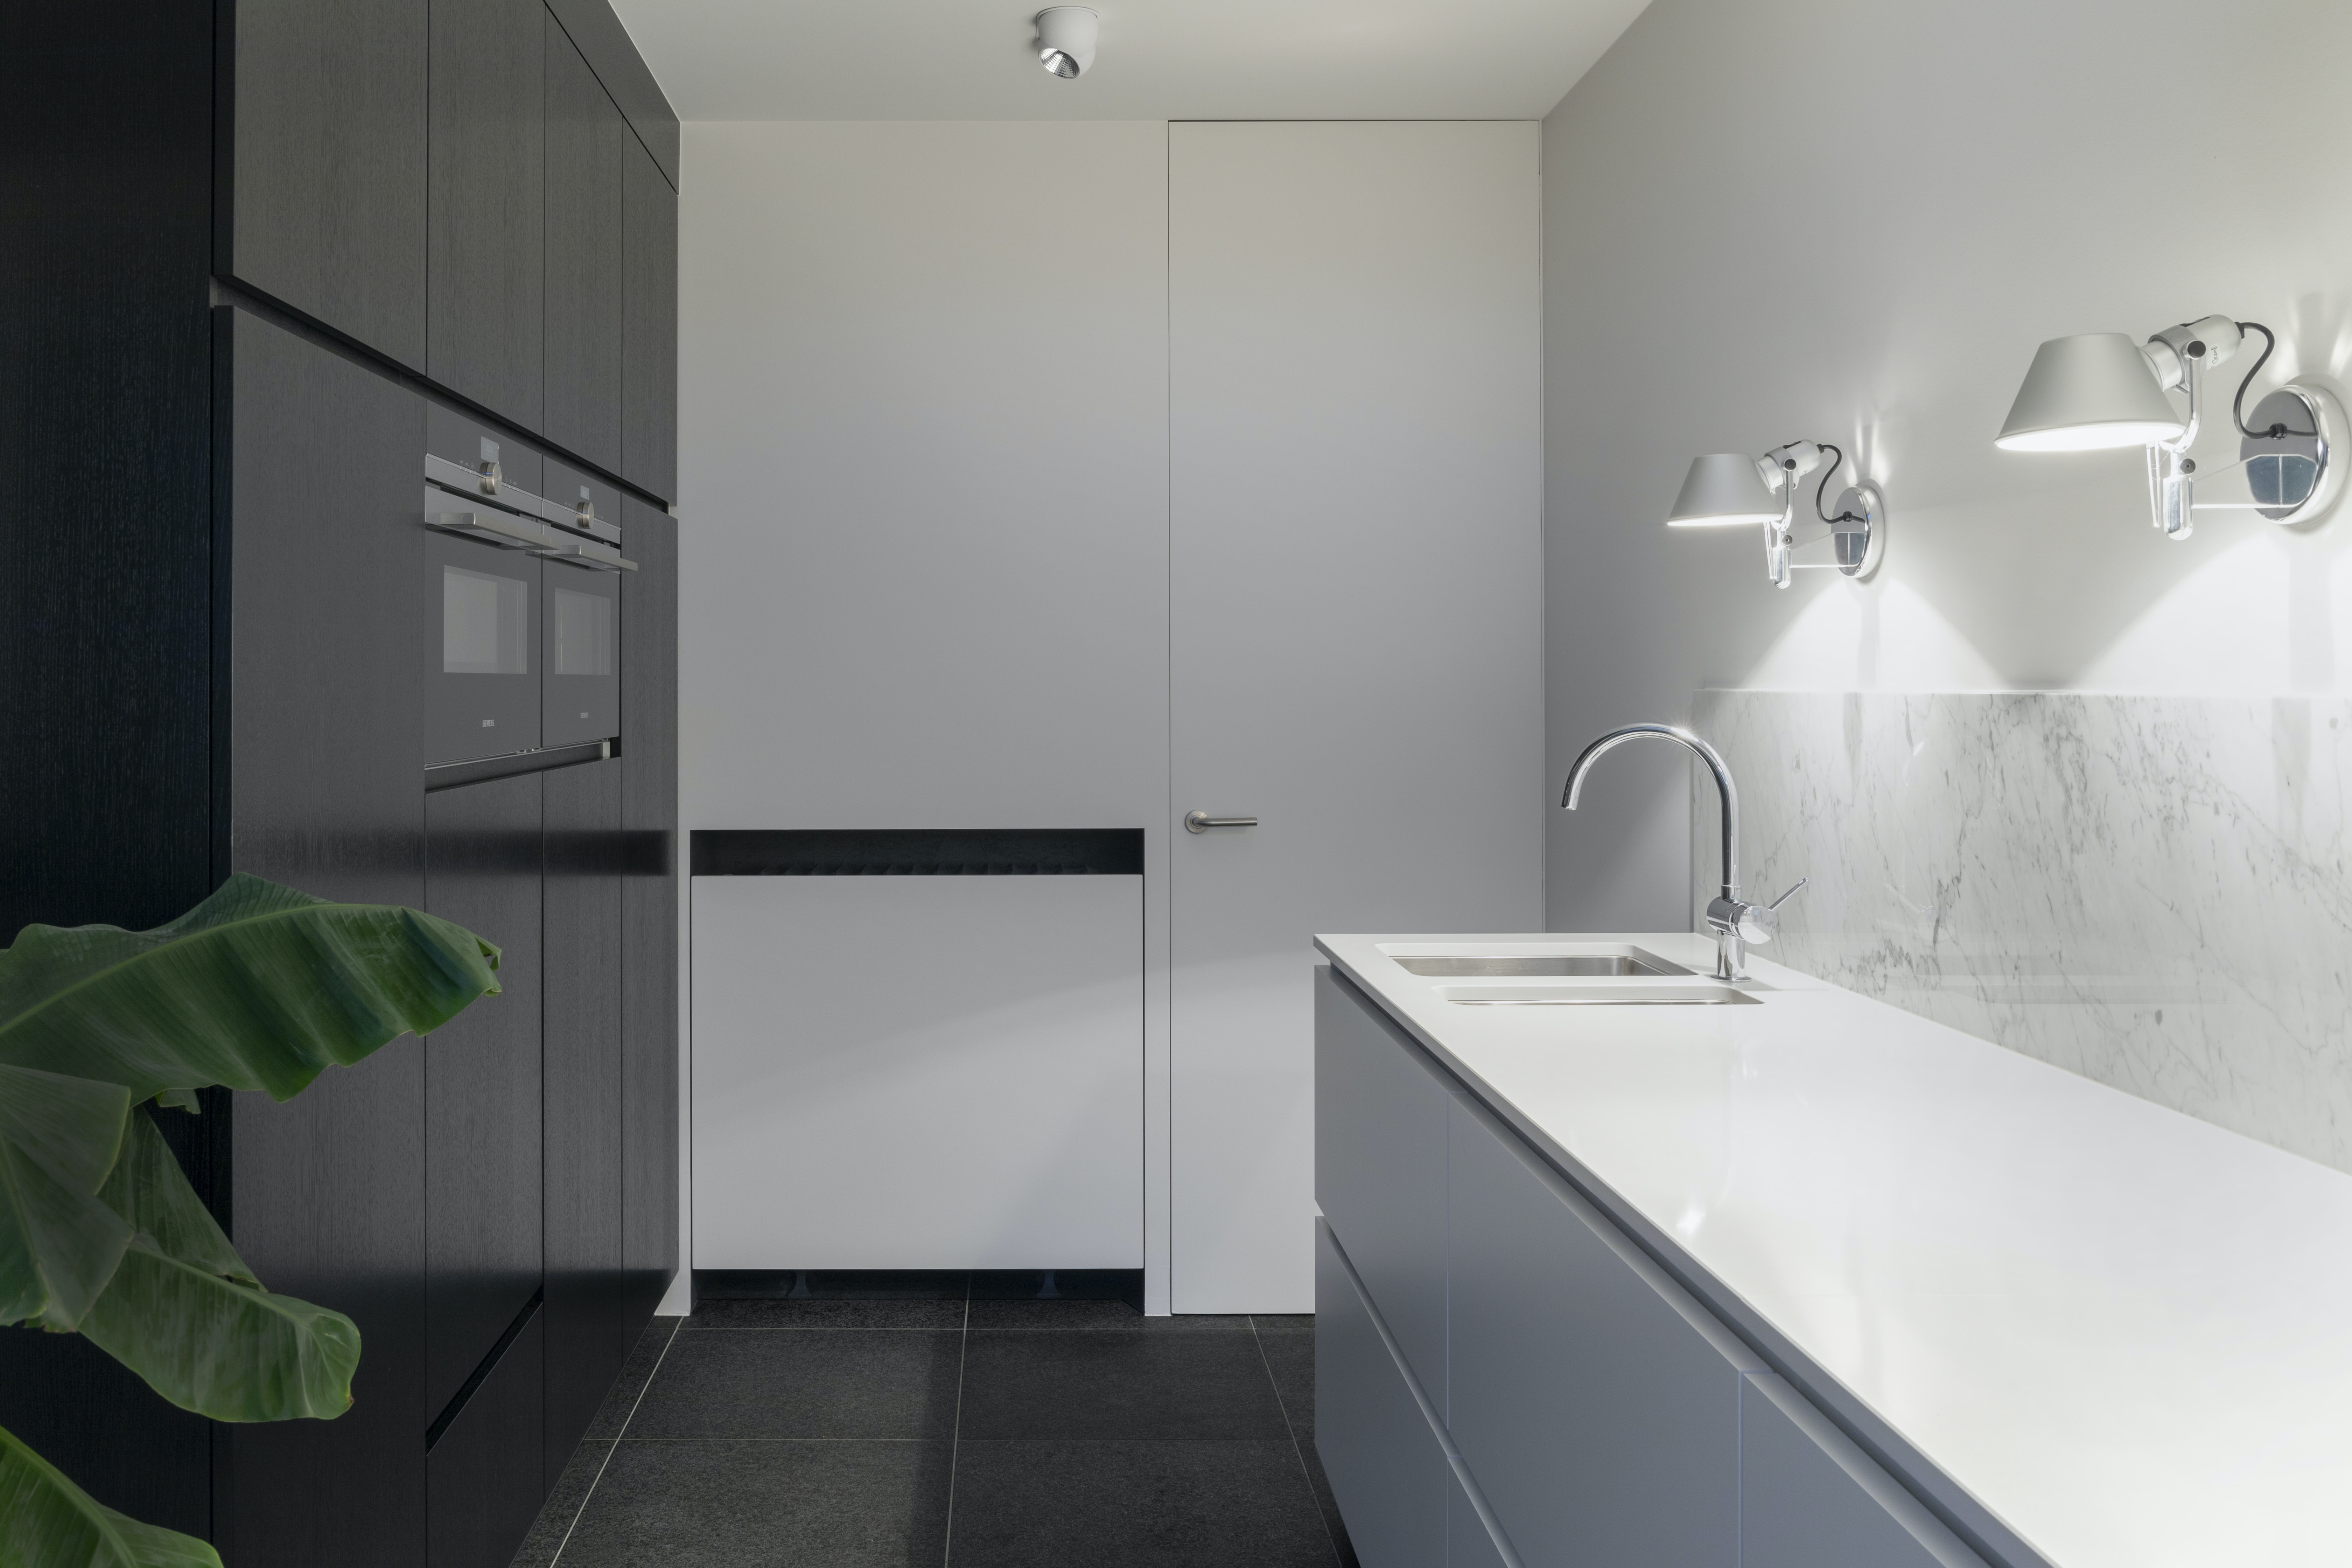 white stainless steel sink with faucet beside closed door